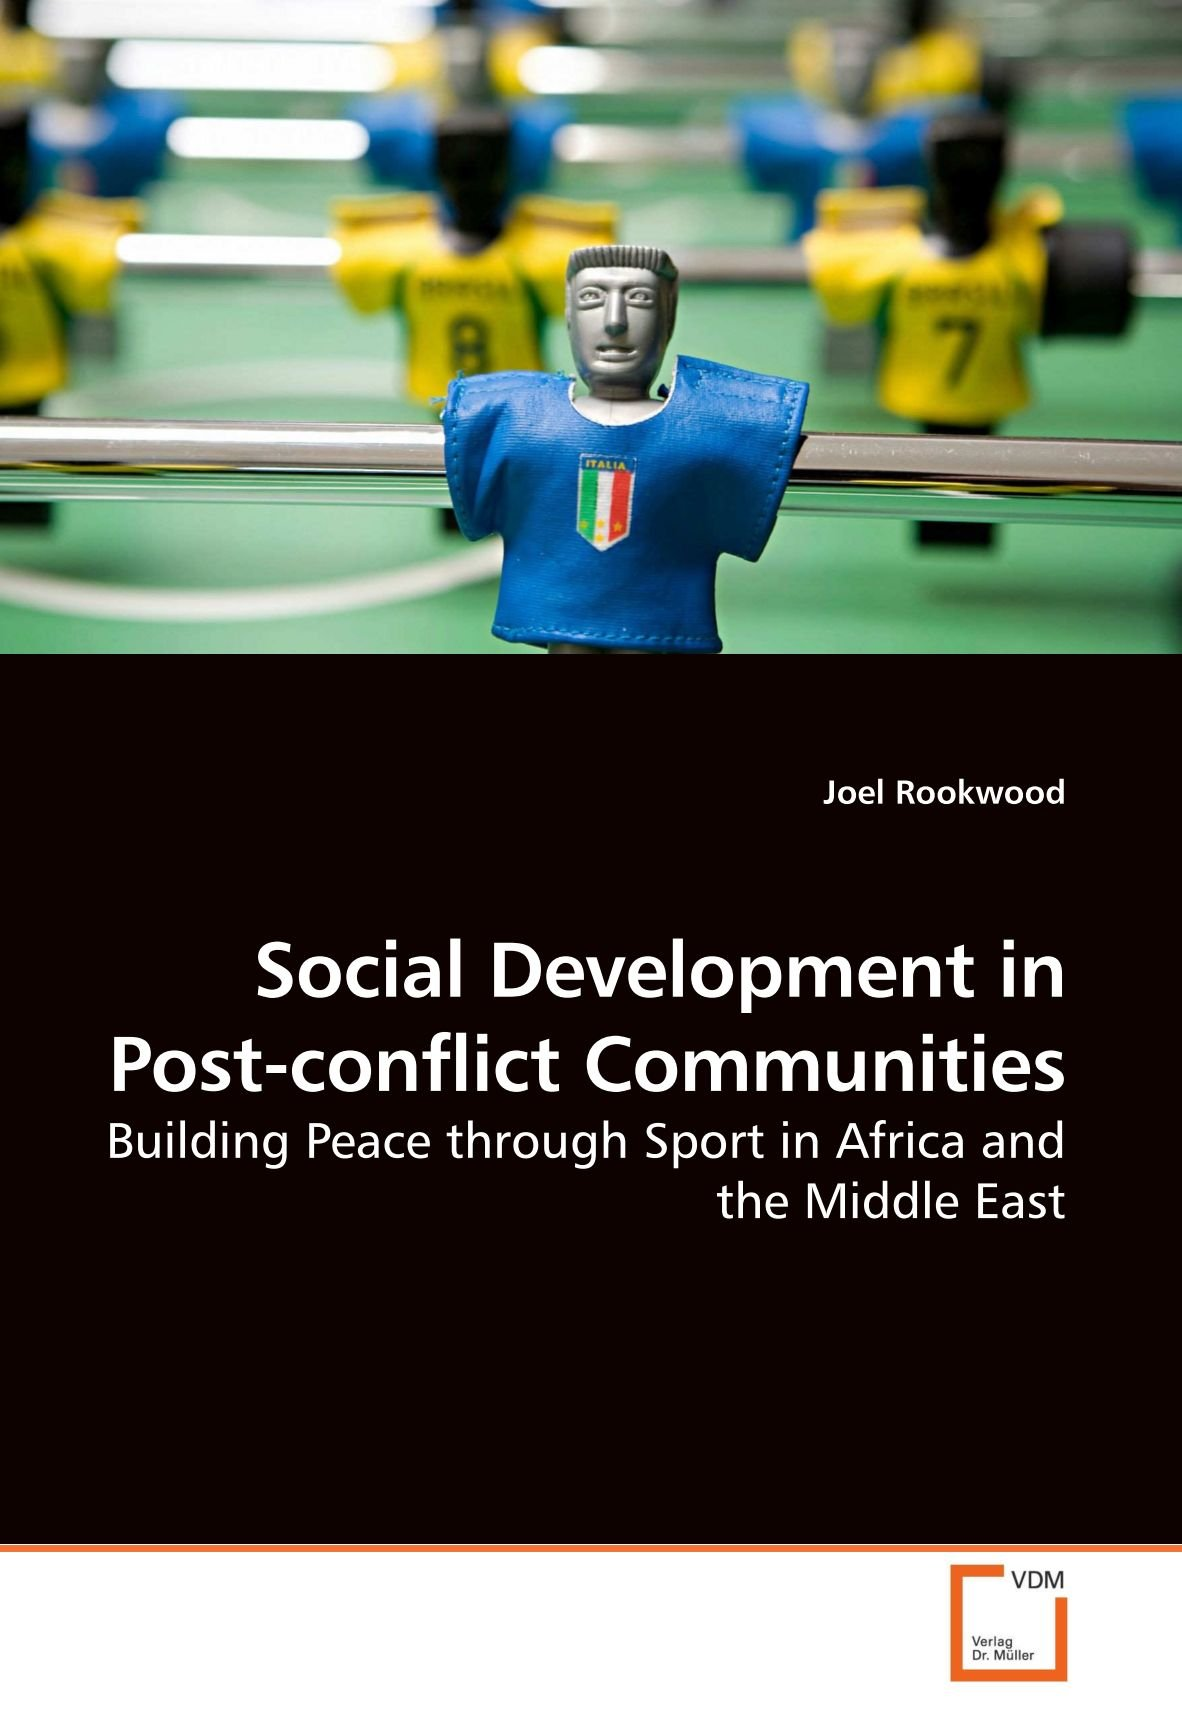 Social Development in Post-conflict Communities: Building Peace through Sport in Africa and the Middle East pdf